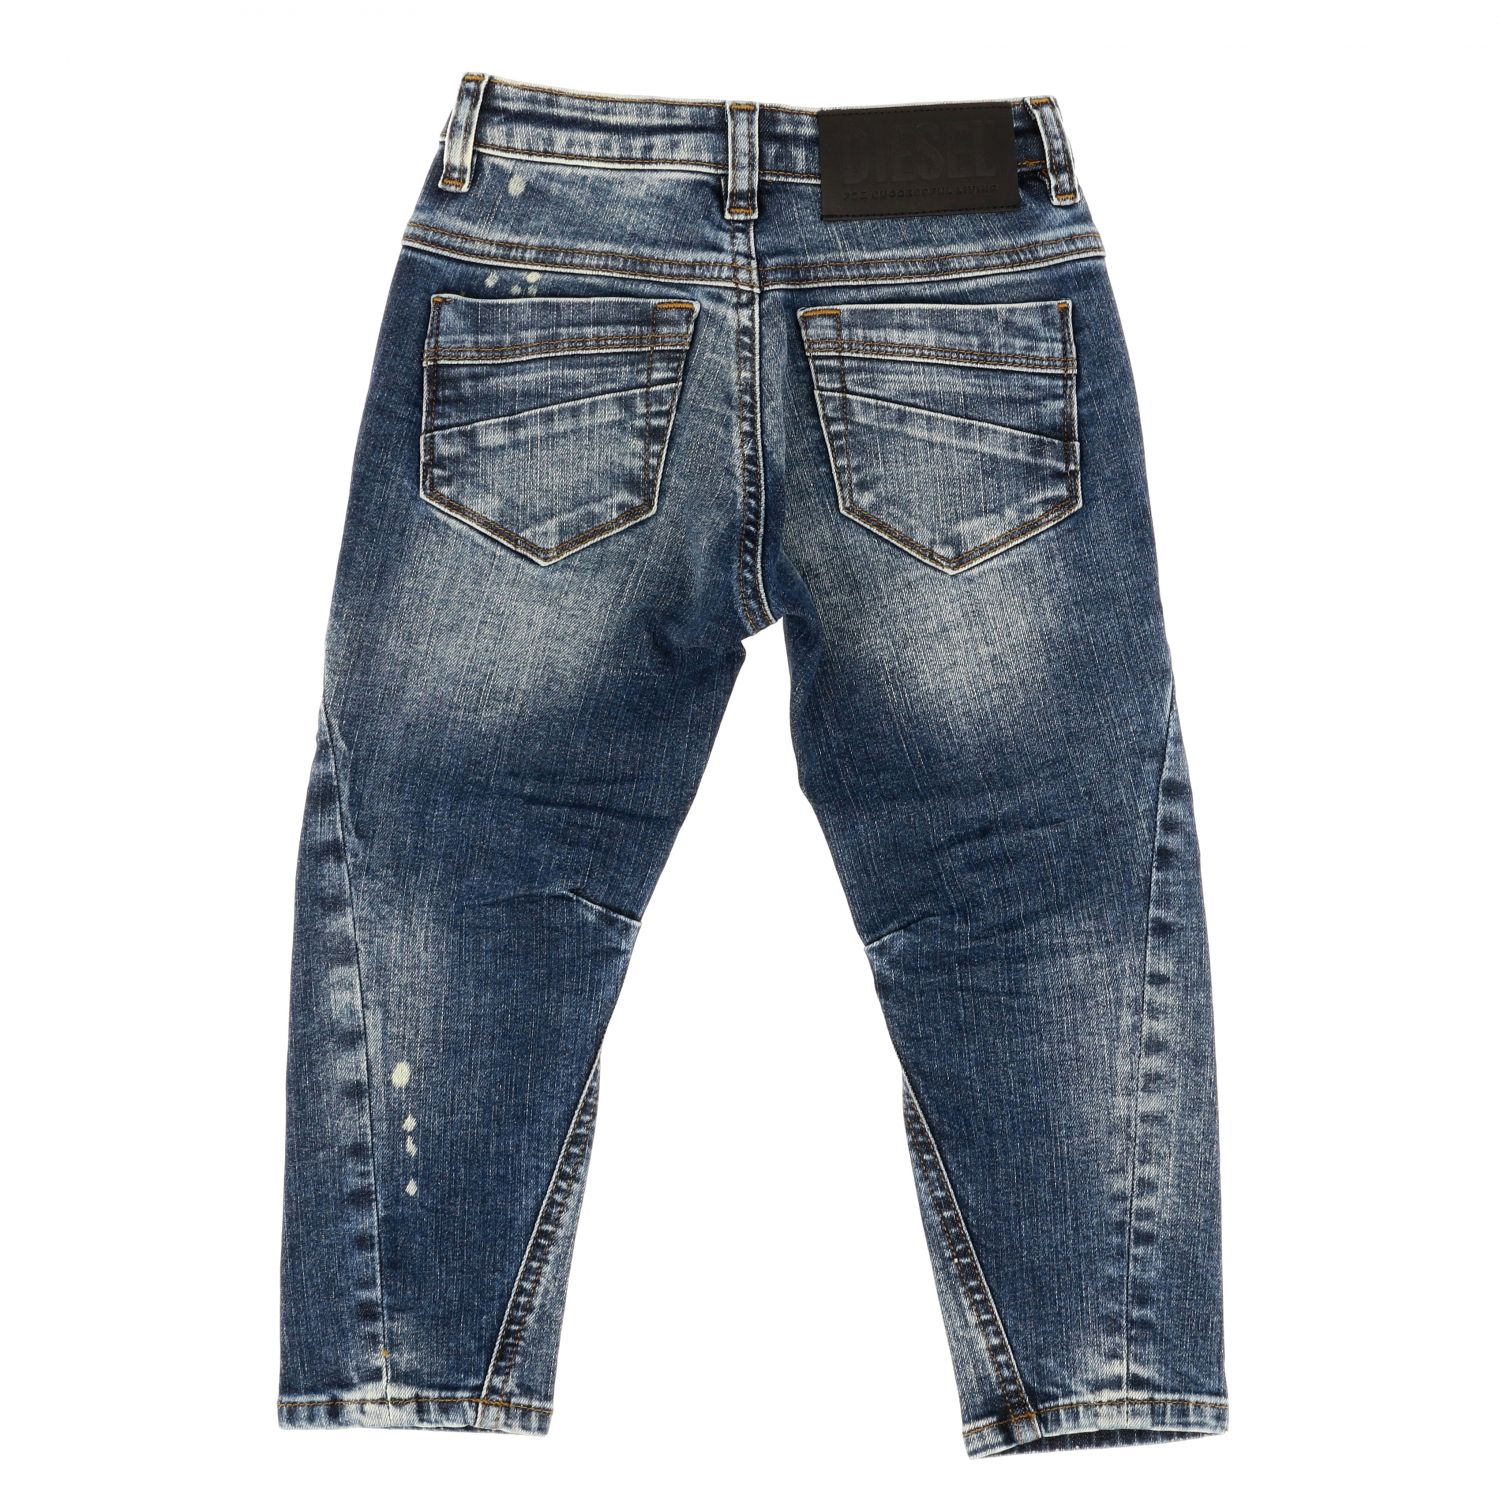 Diesel jeans in used denim with tears blue 2